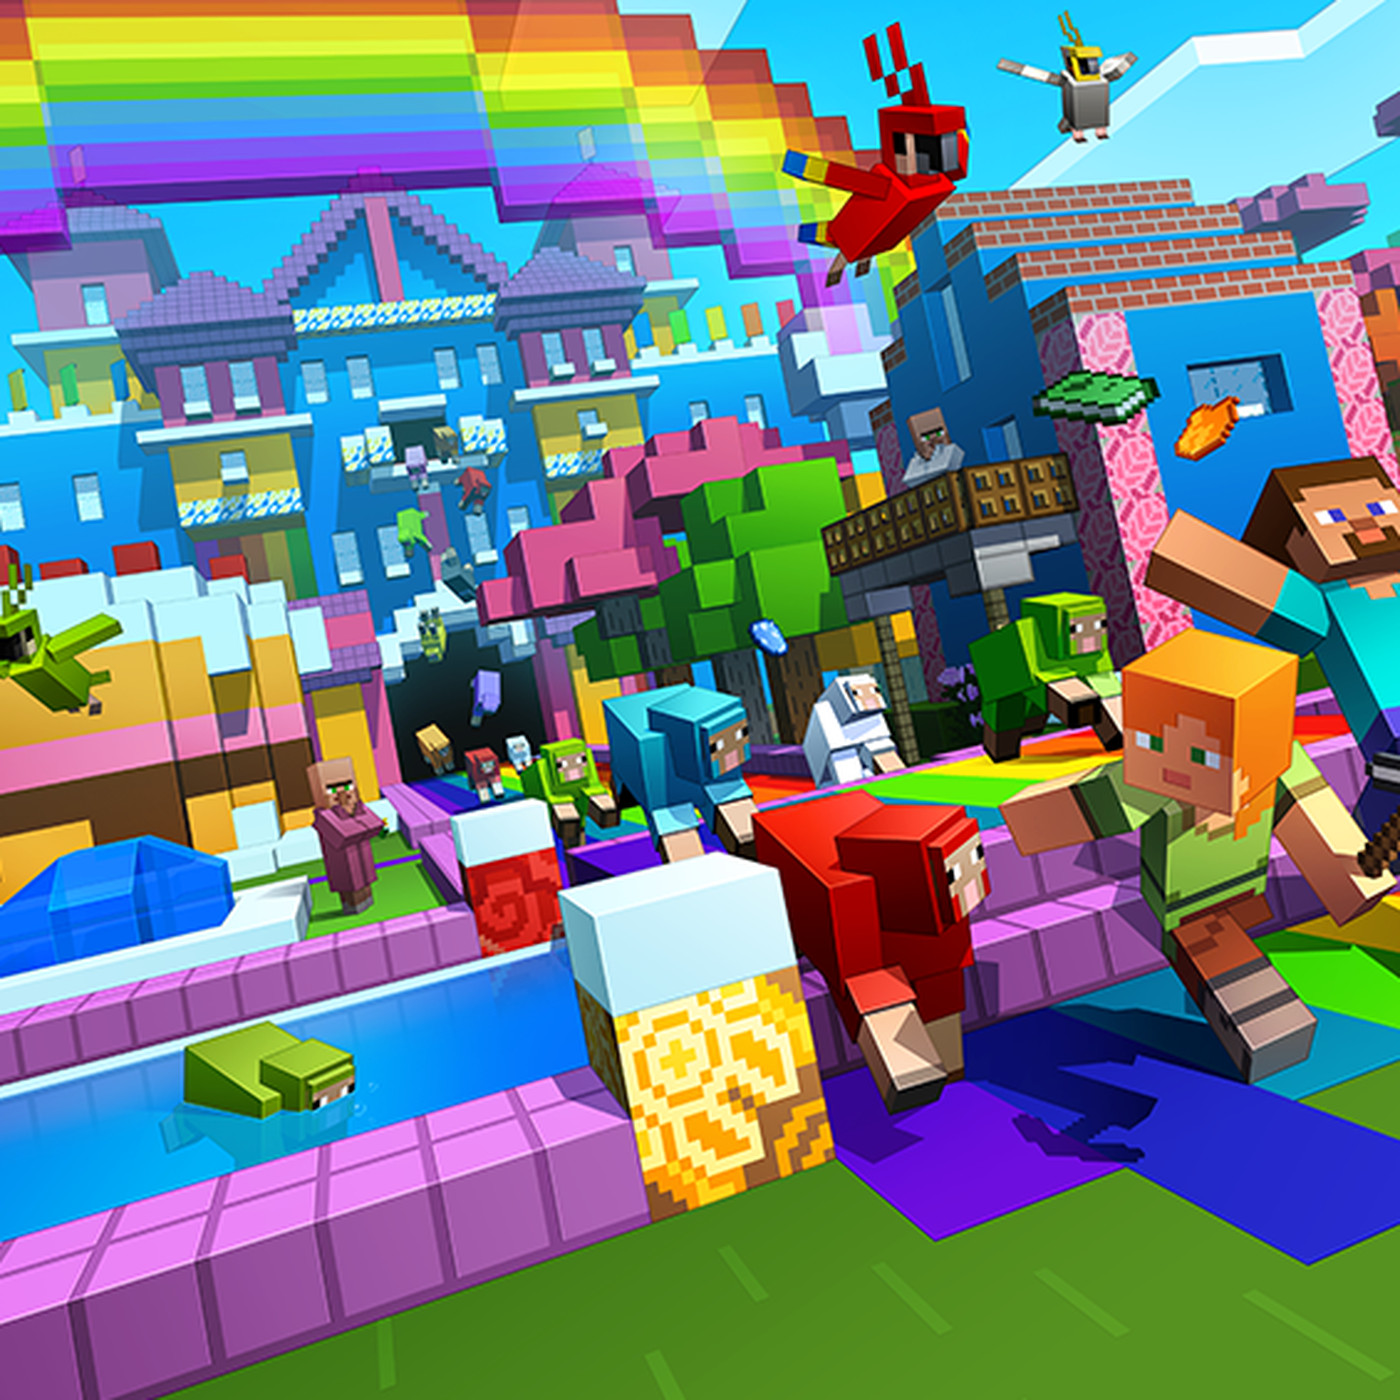 PlayStation not on board with cross-play Minecraft - Polygon